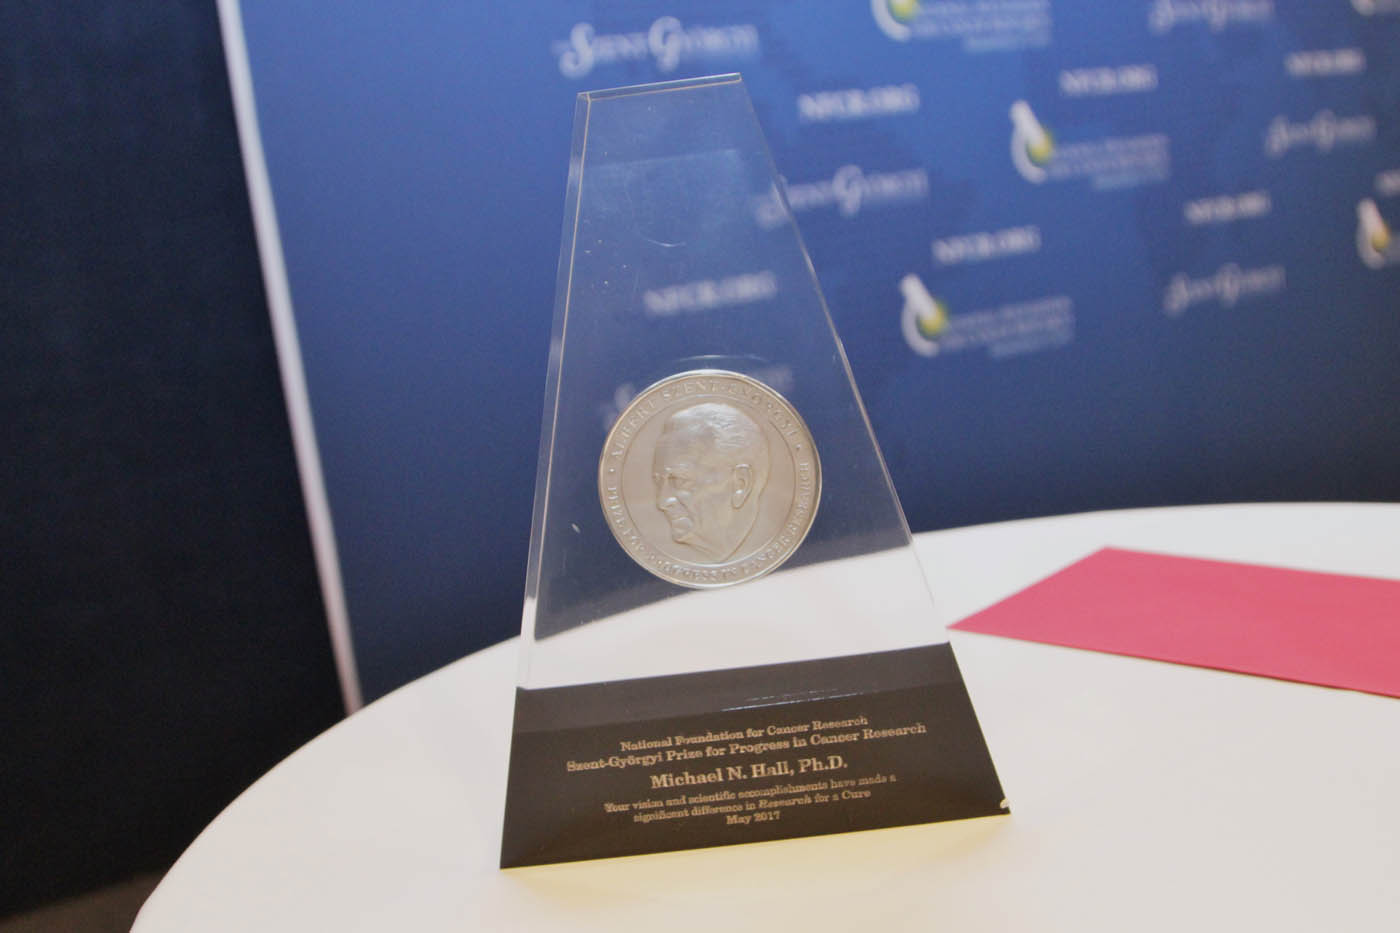 The Szent-Györgyi Prize for Progress in Cancer Research